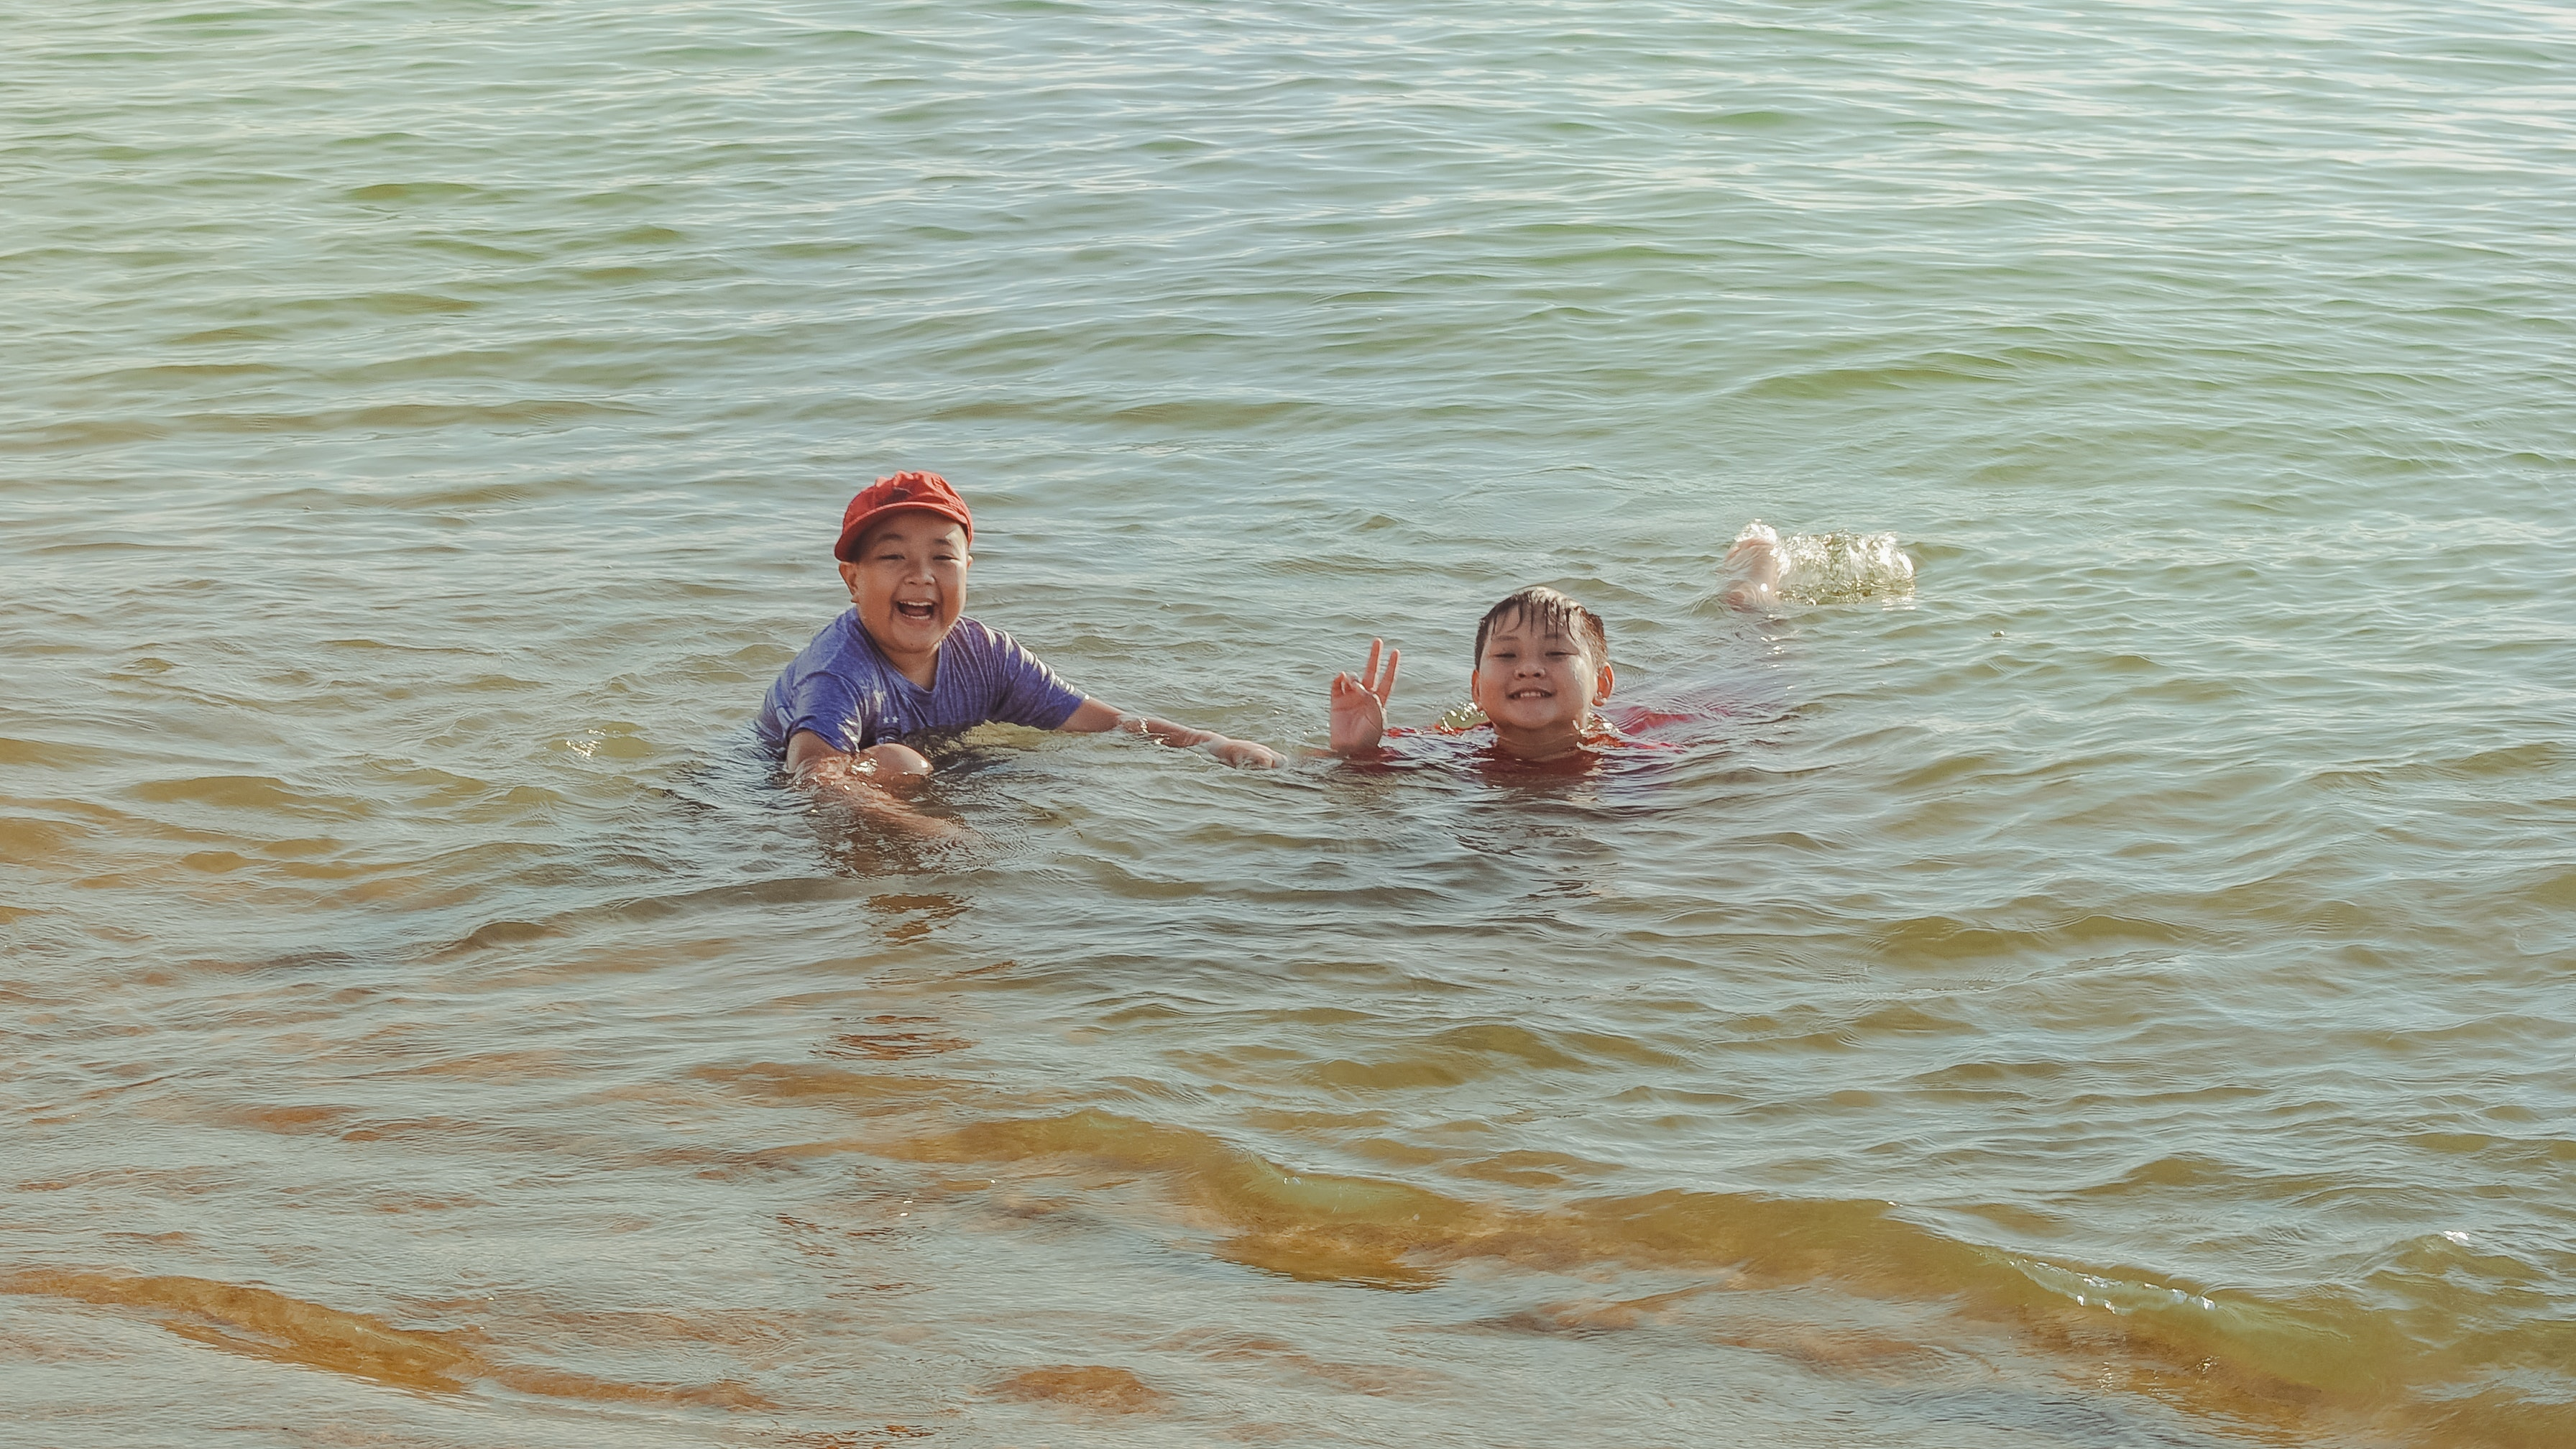 Two Boy on Brown Body of Water, Action, Ocean, Waves, Water, HQ Photo